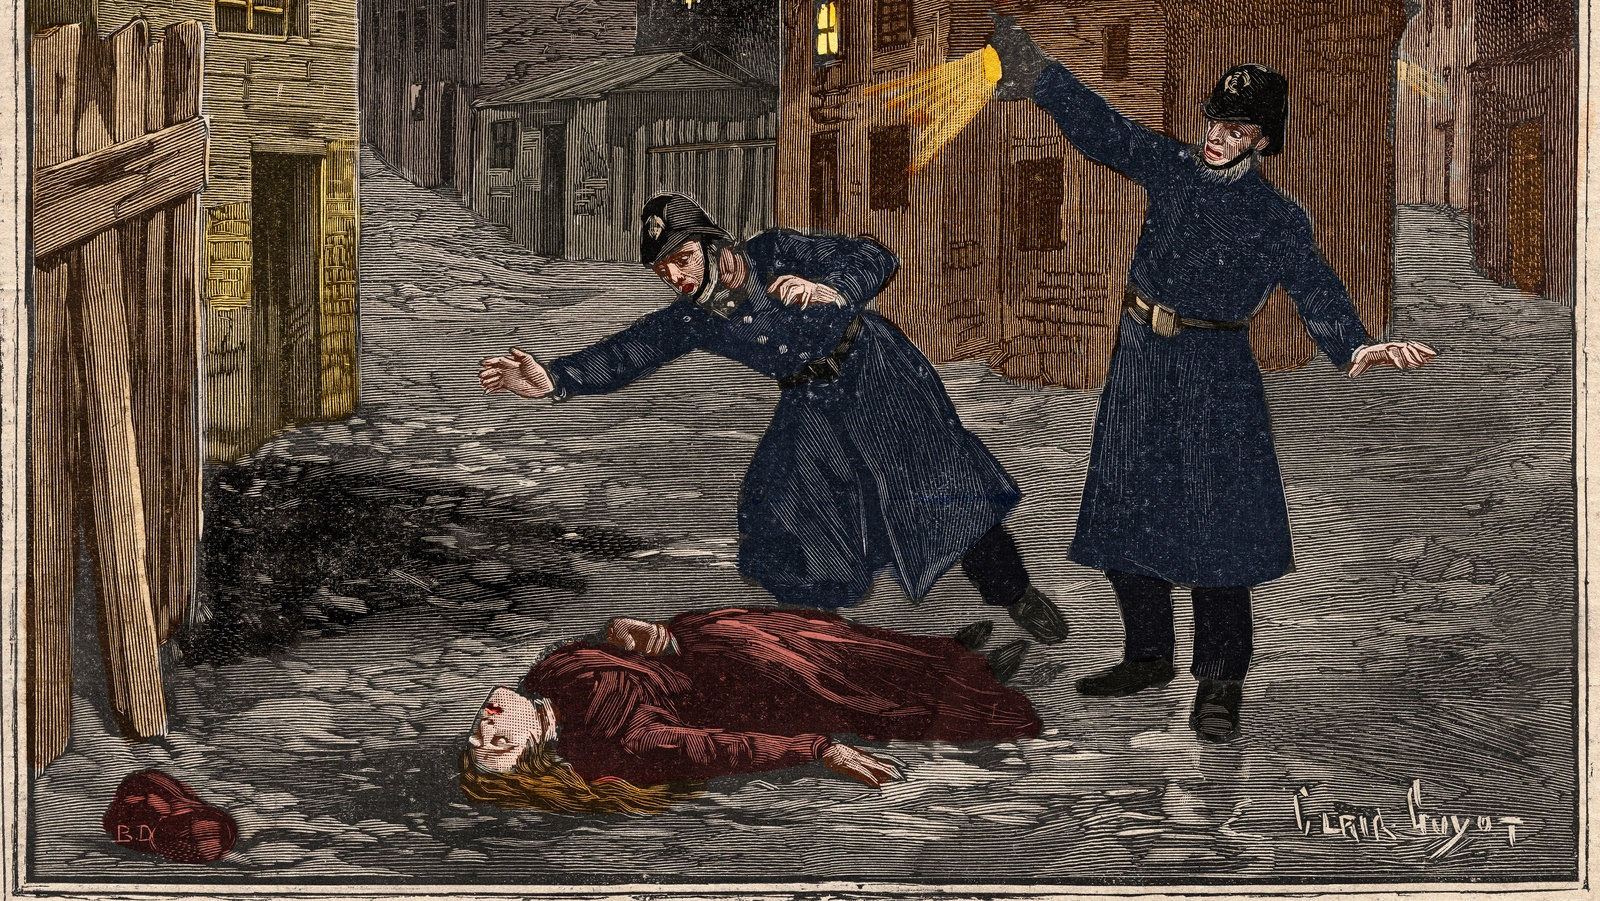 Who was Jack the Ripper